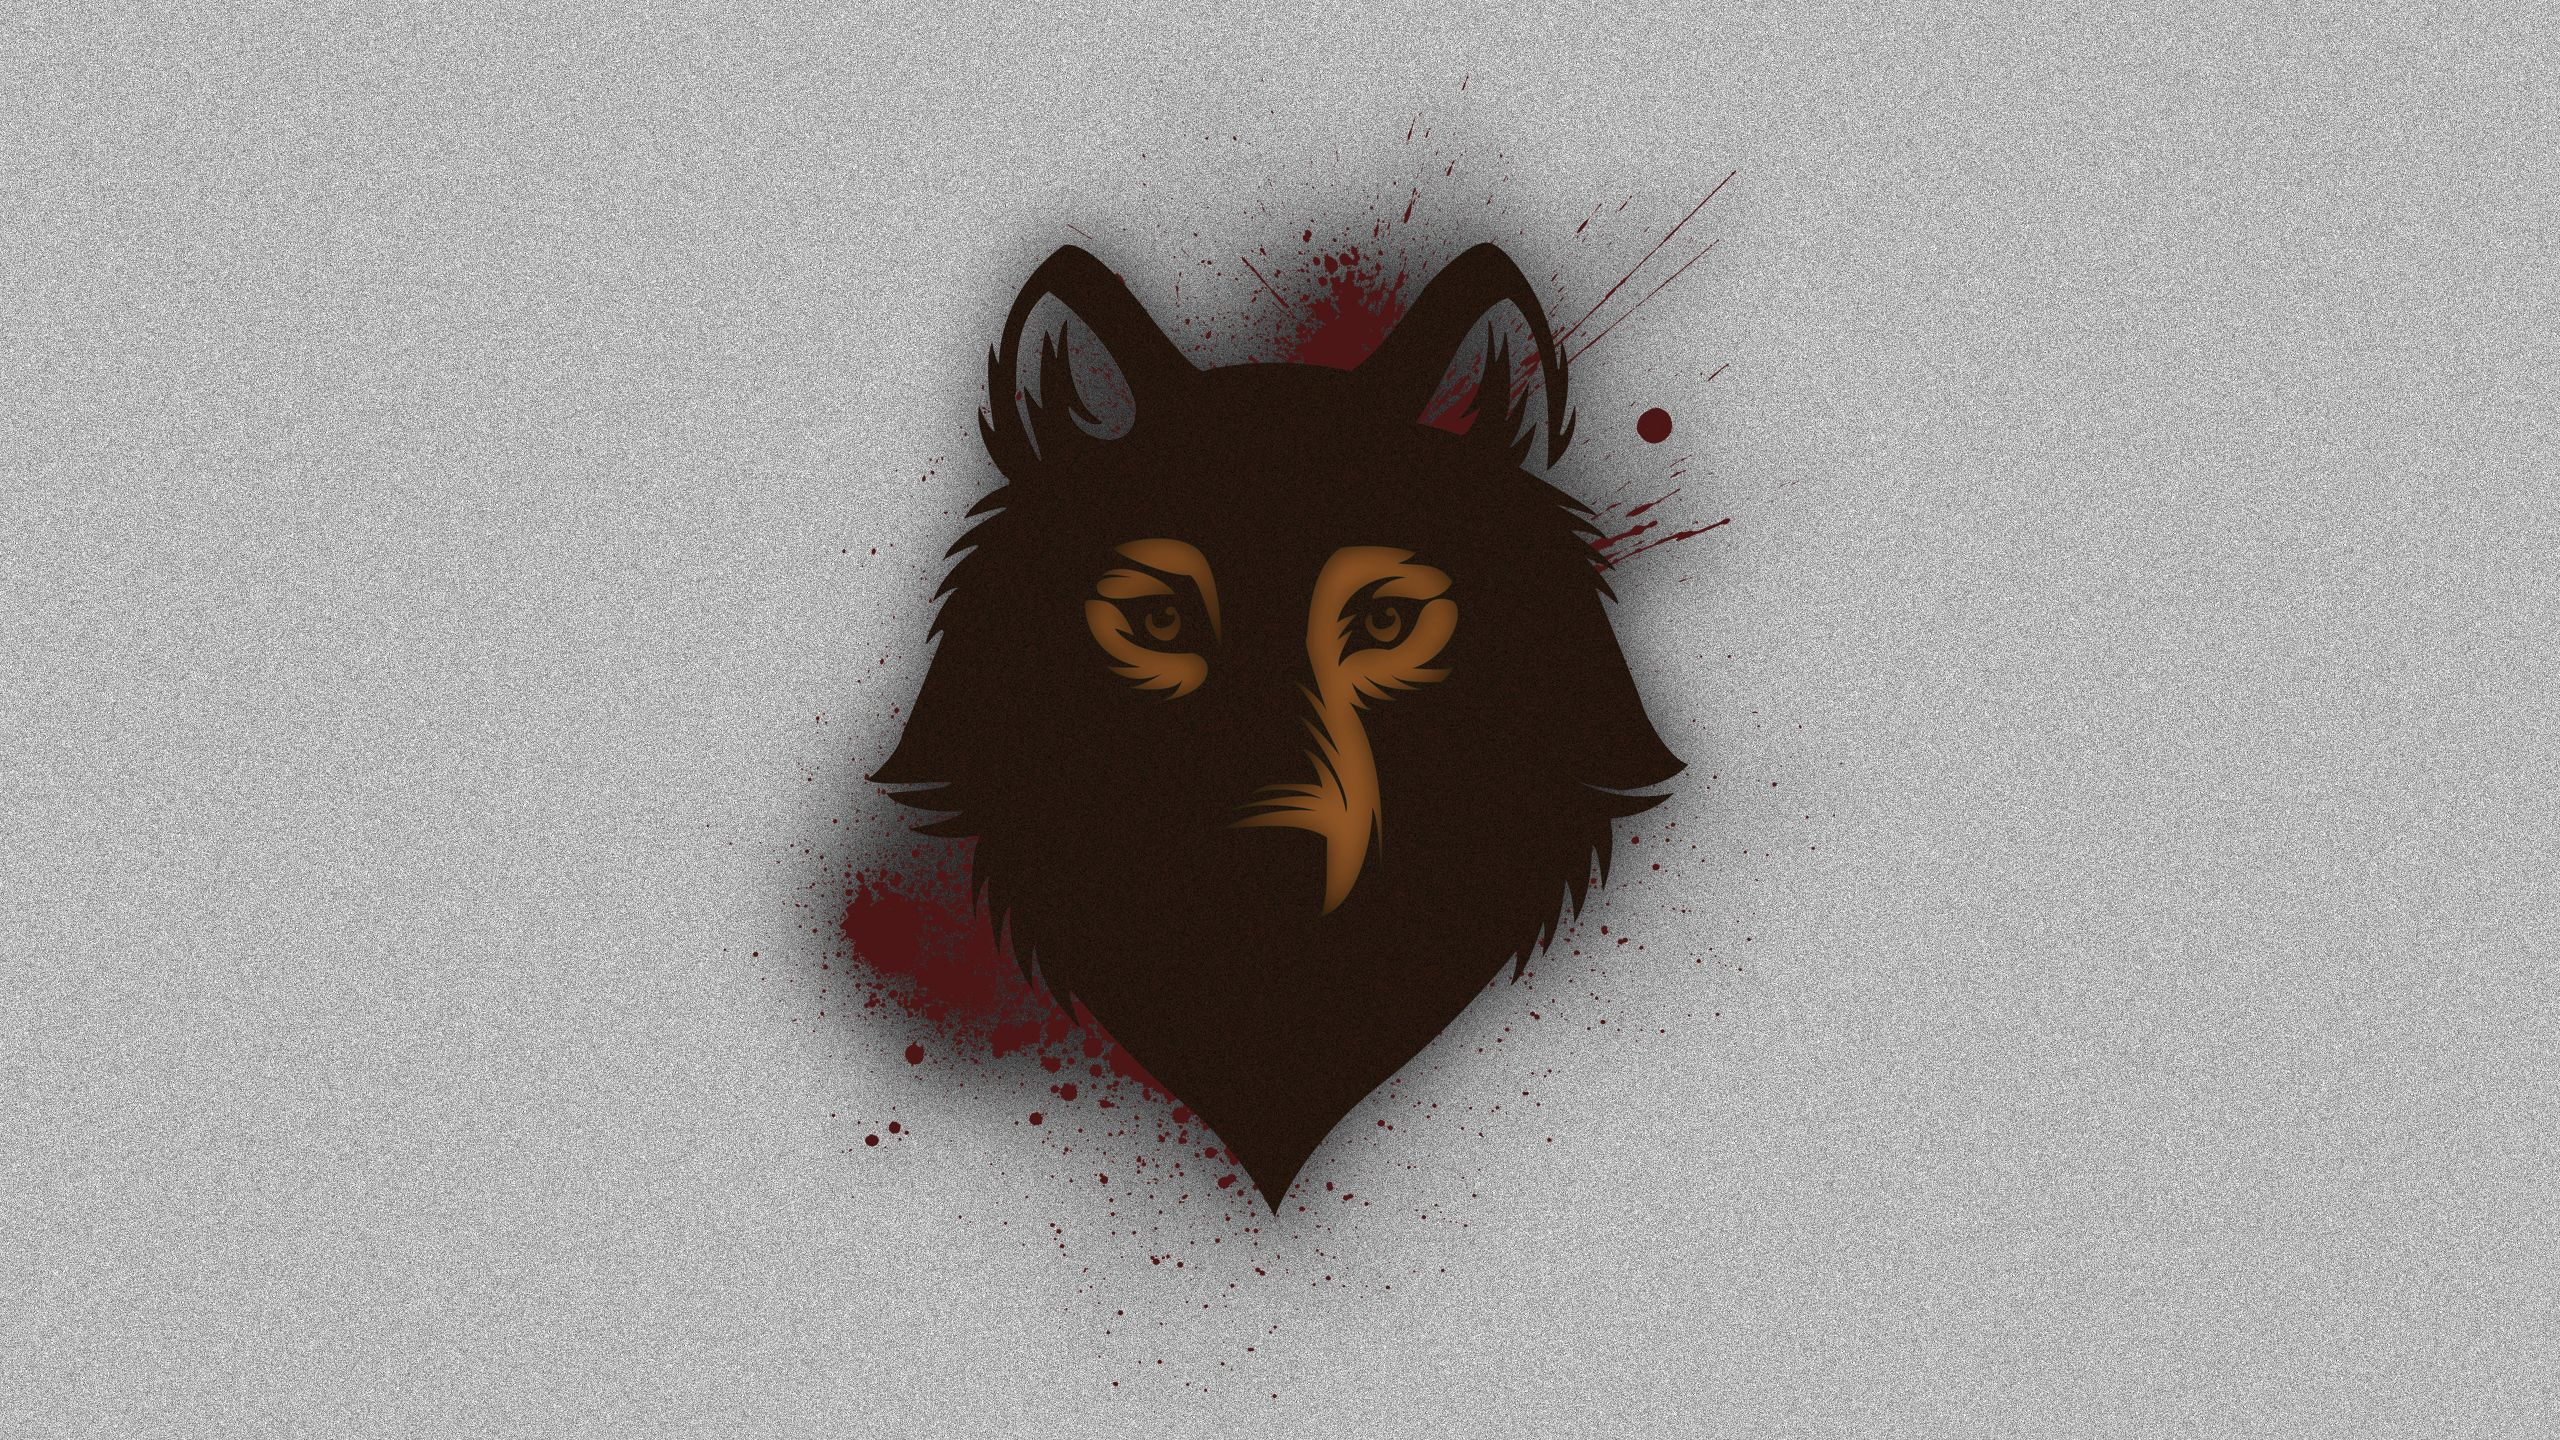 113489 Screensavers and Wallpapers Muzzle for phone. Download Abstract, Background, Muzzle, Stains, Spots, Wolf pictures for free